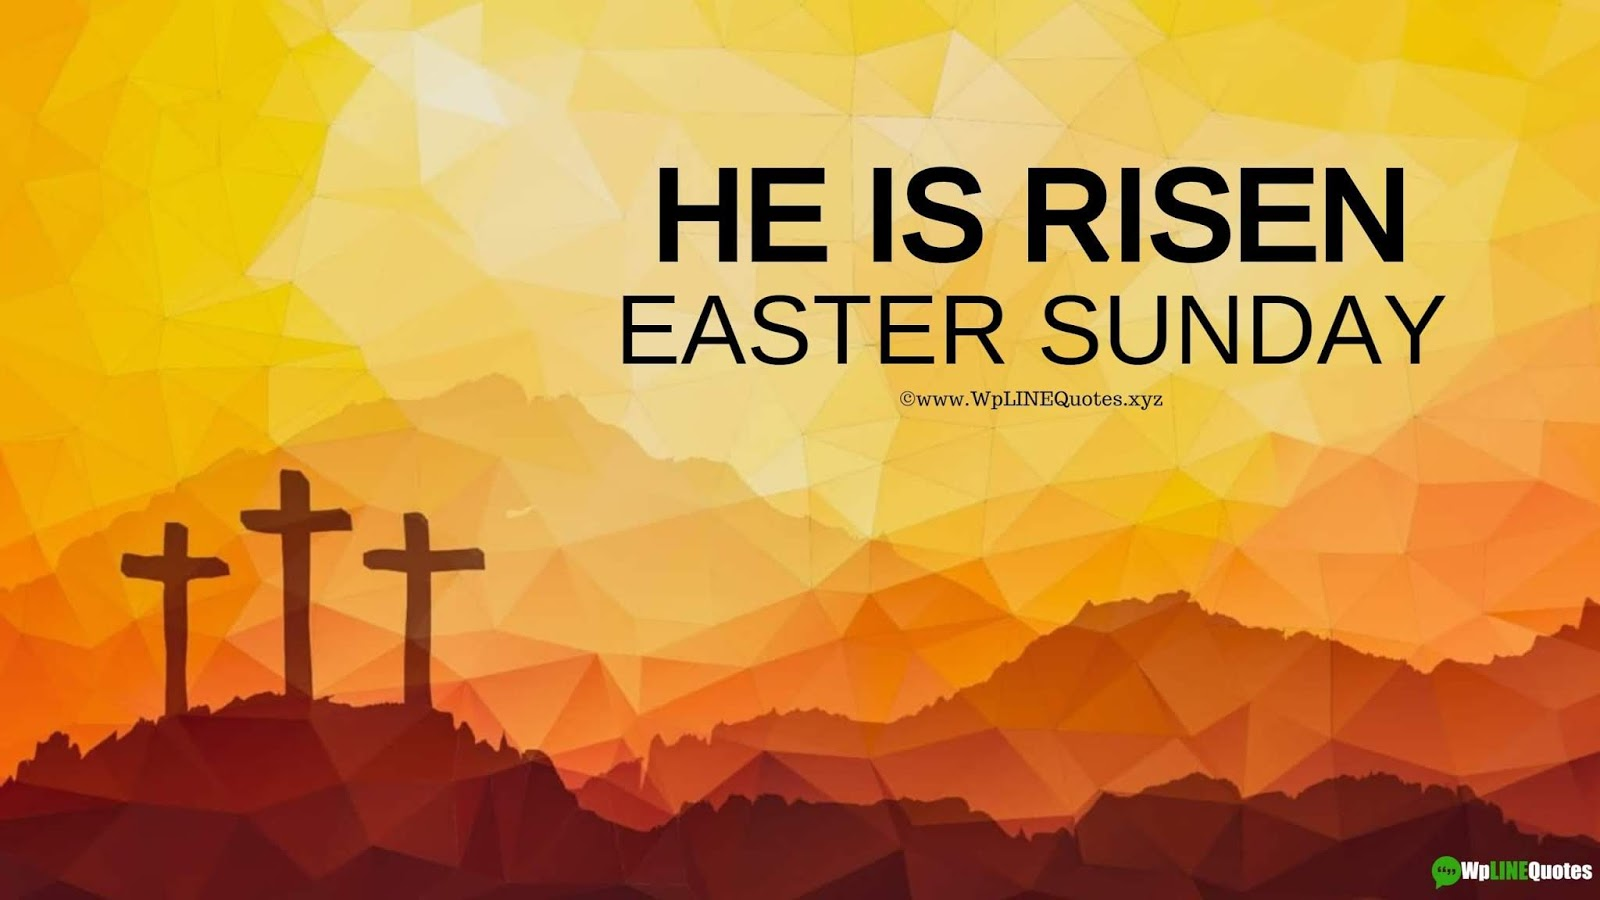 Happy Easter Wishes, Greetings & Messages For Whatsapp, Facebook & Instagram Captions